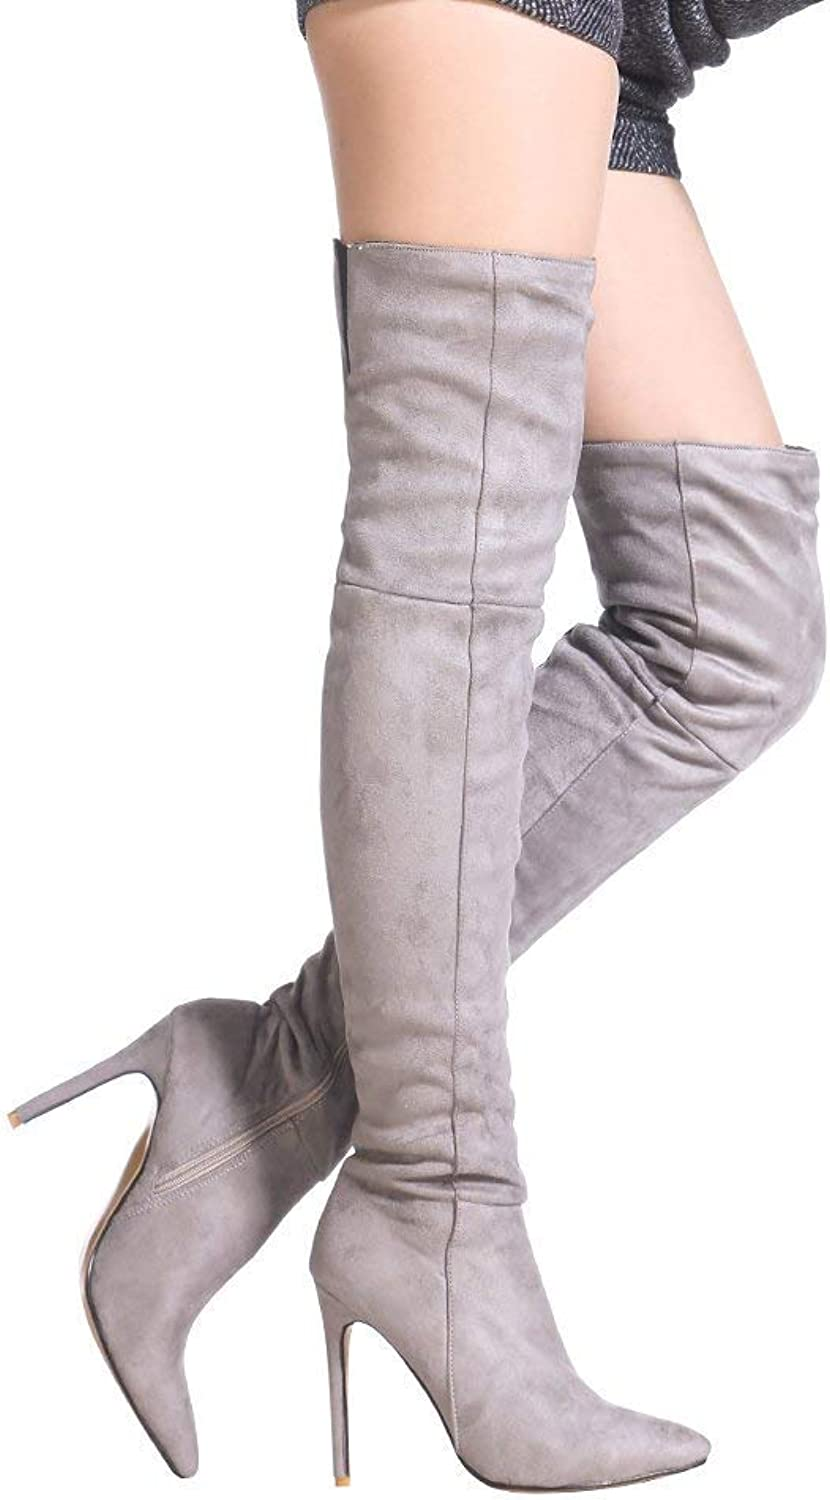 Women's Thigh High Over The Knee Stiletto Heel Pointy Toe Stretch Boots